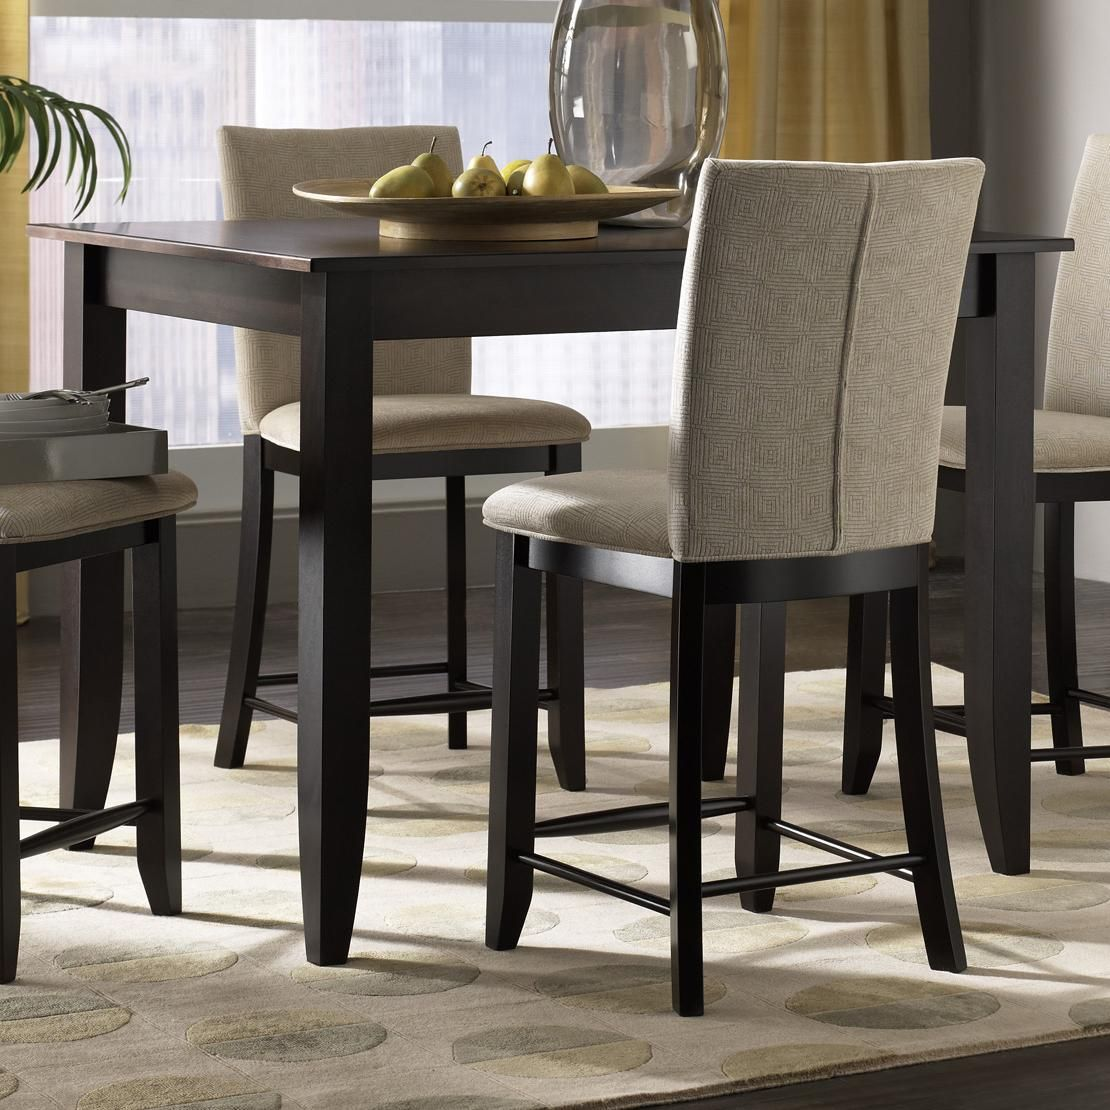 High Dining Room Sets: High Dining Customizable Rectangular